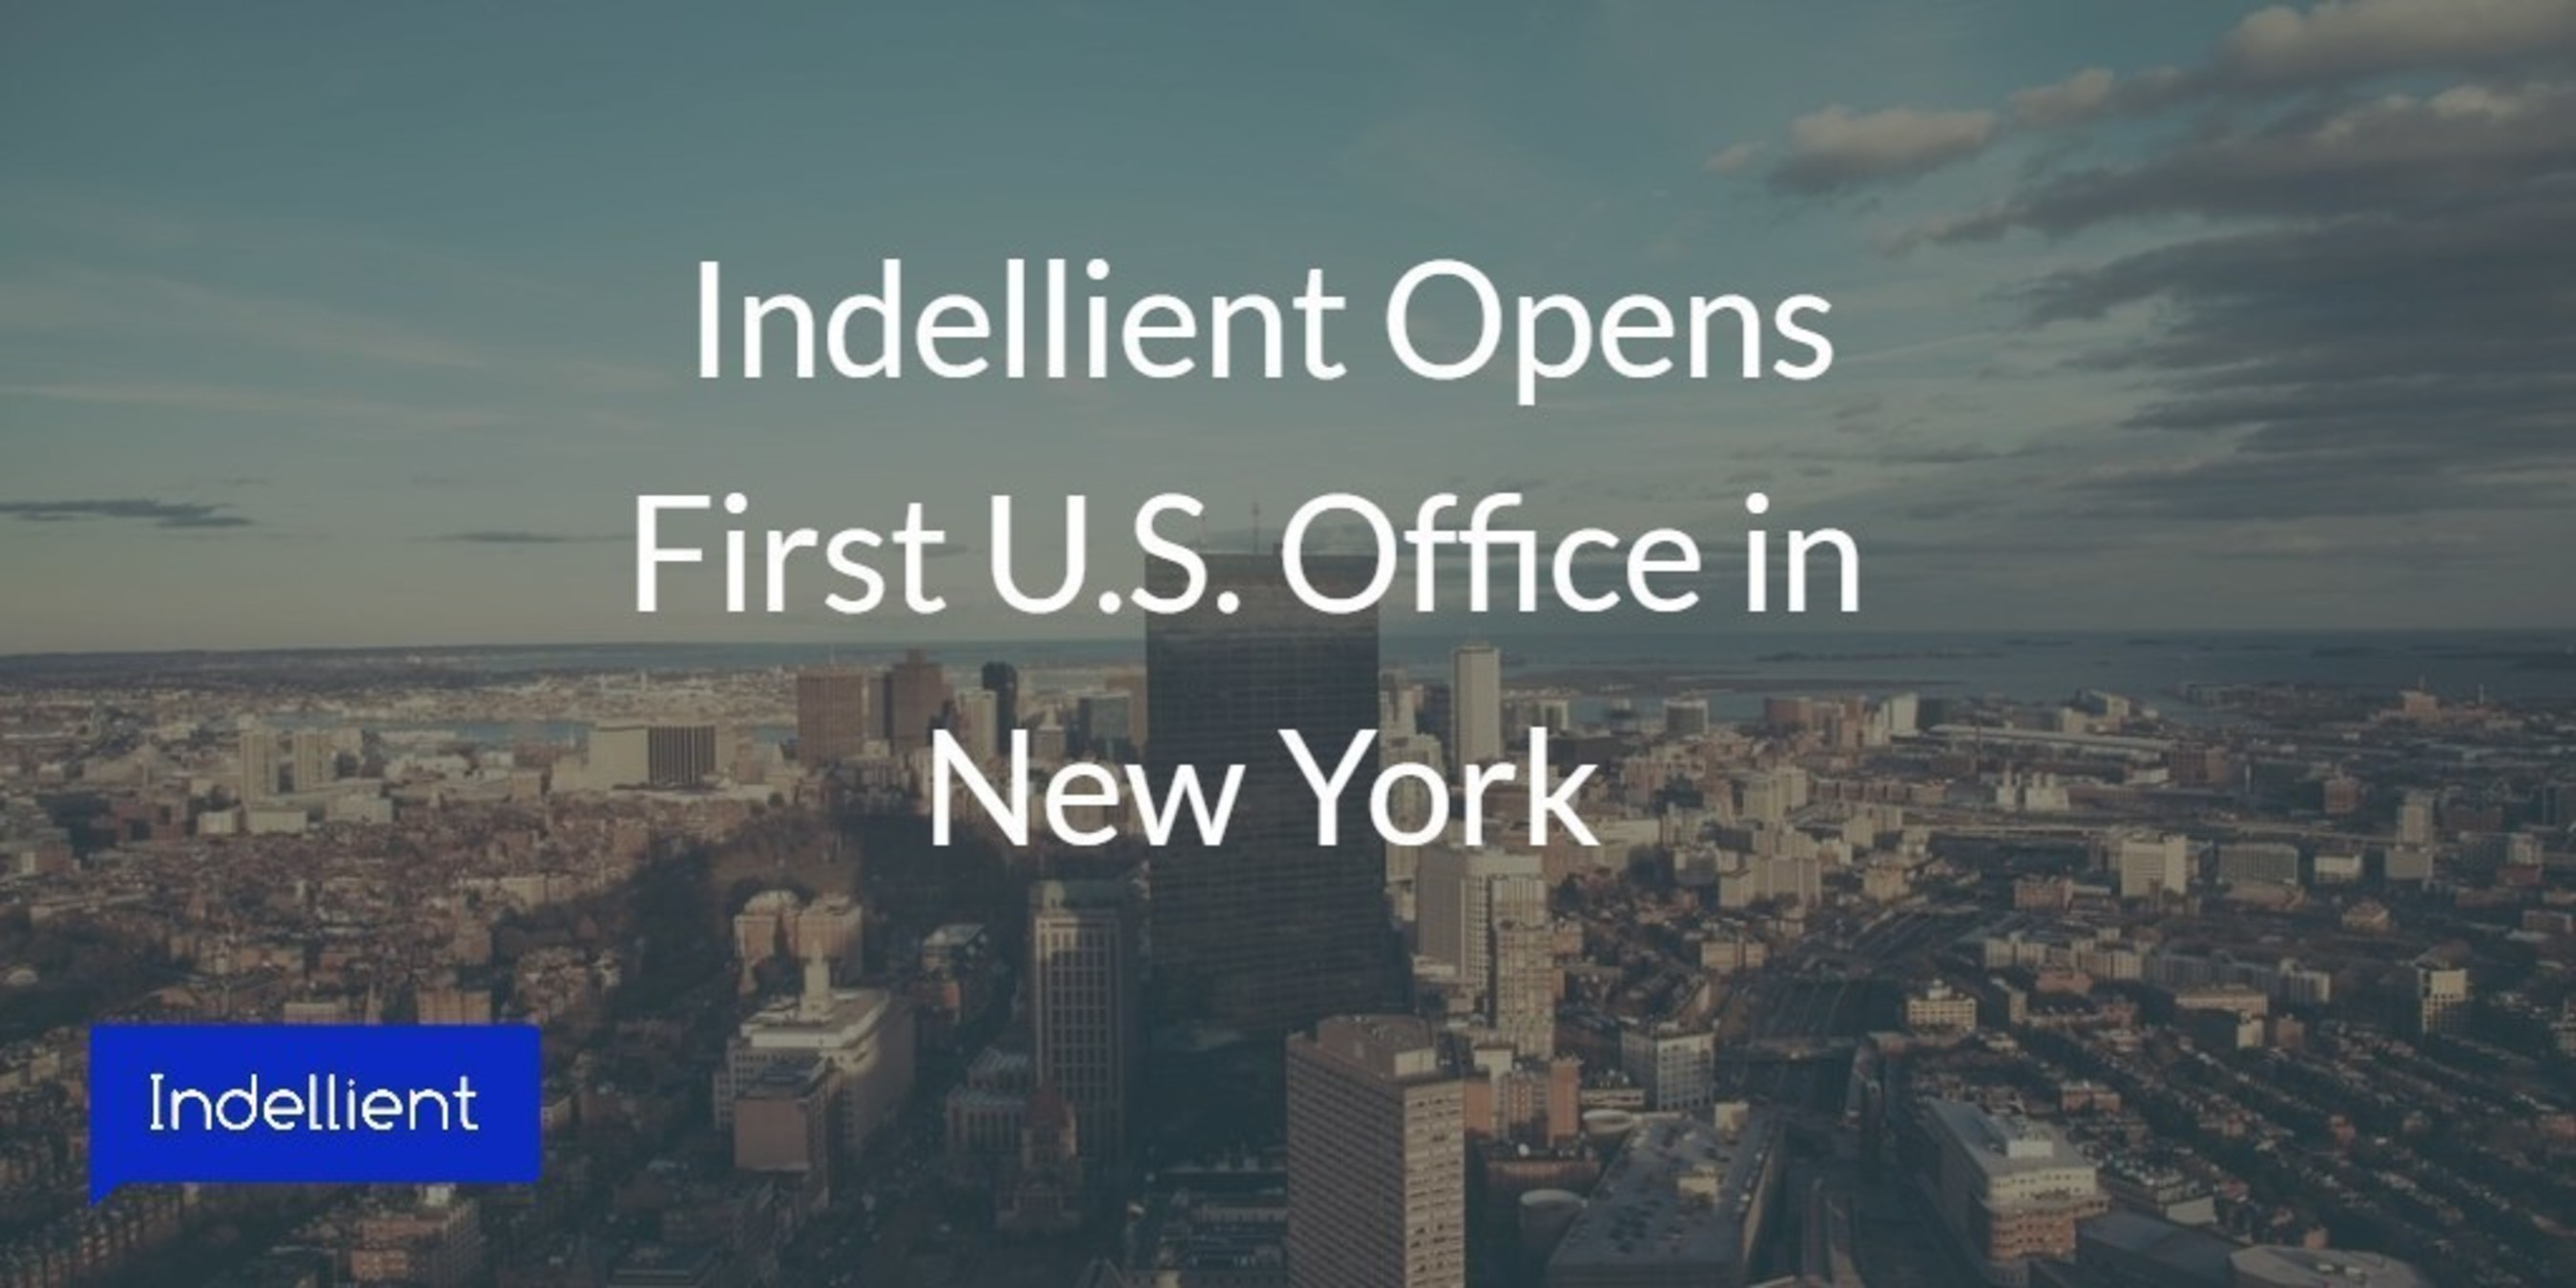 Indellient, a Software Development and IT Professional Services Firm, Opens Office in New York